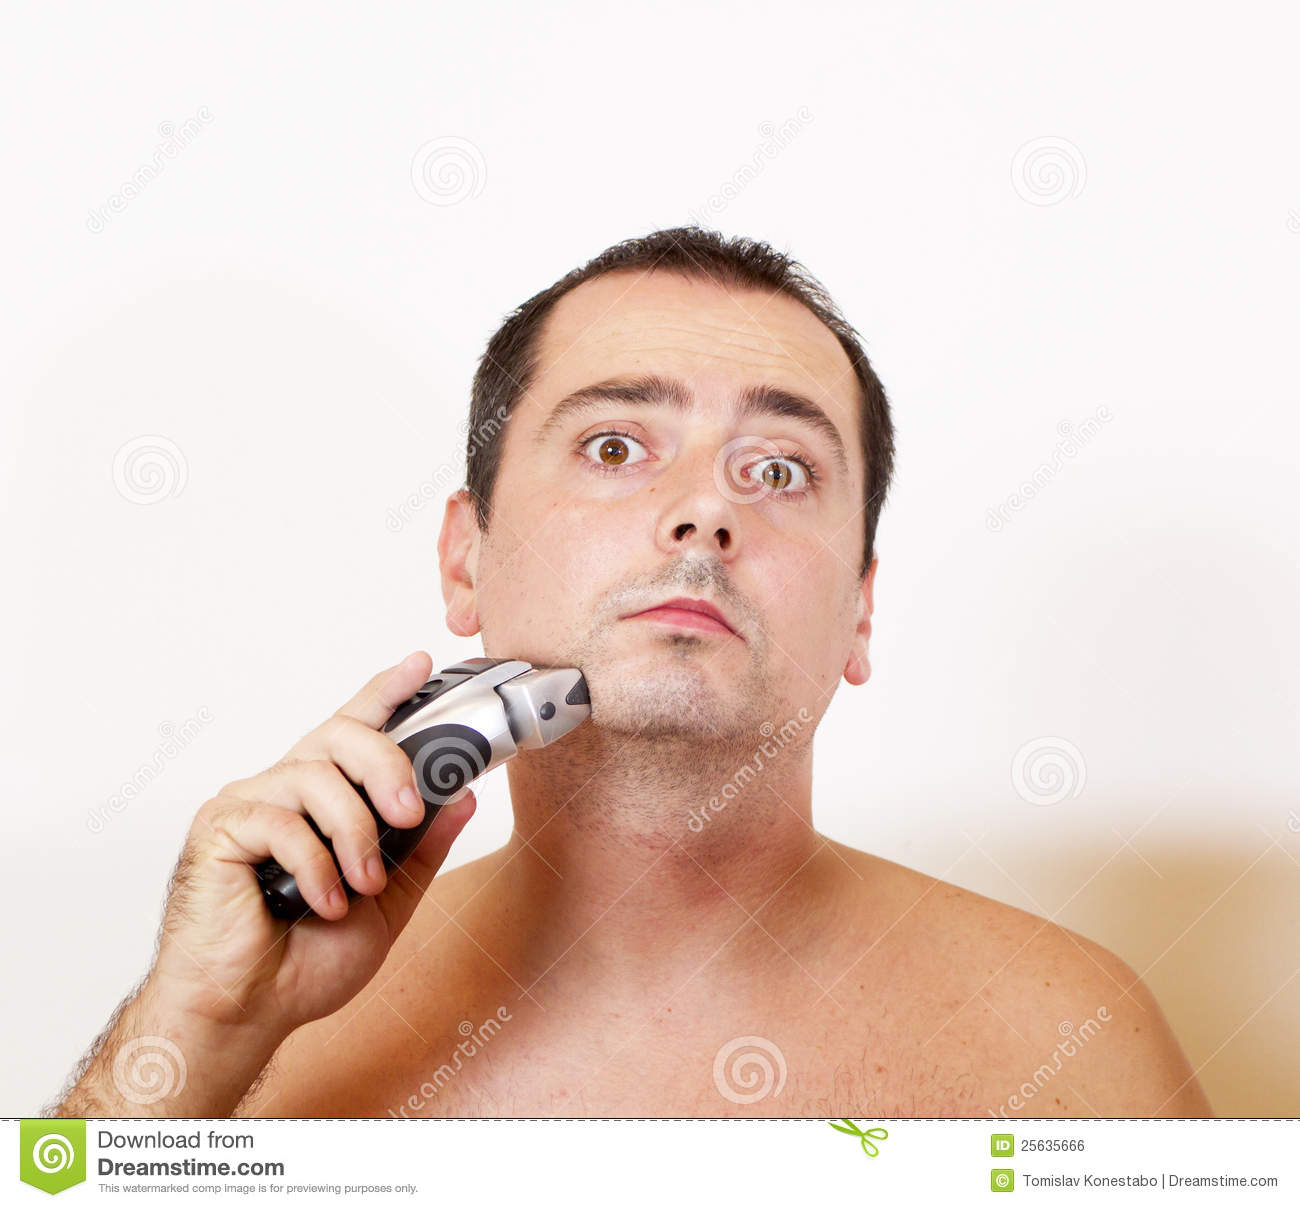 Man Shaving His Beard With An Electric Razor Royalty Free Stock Image